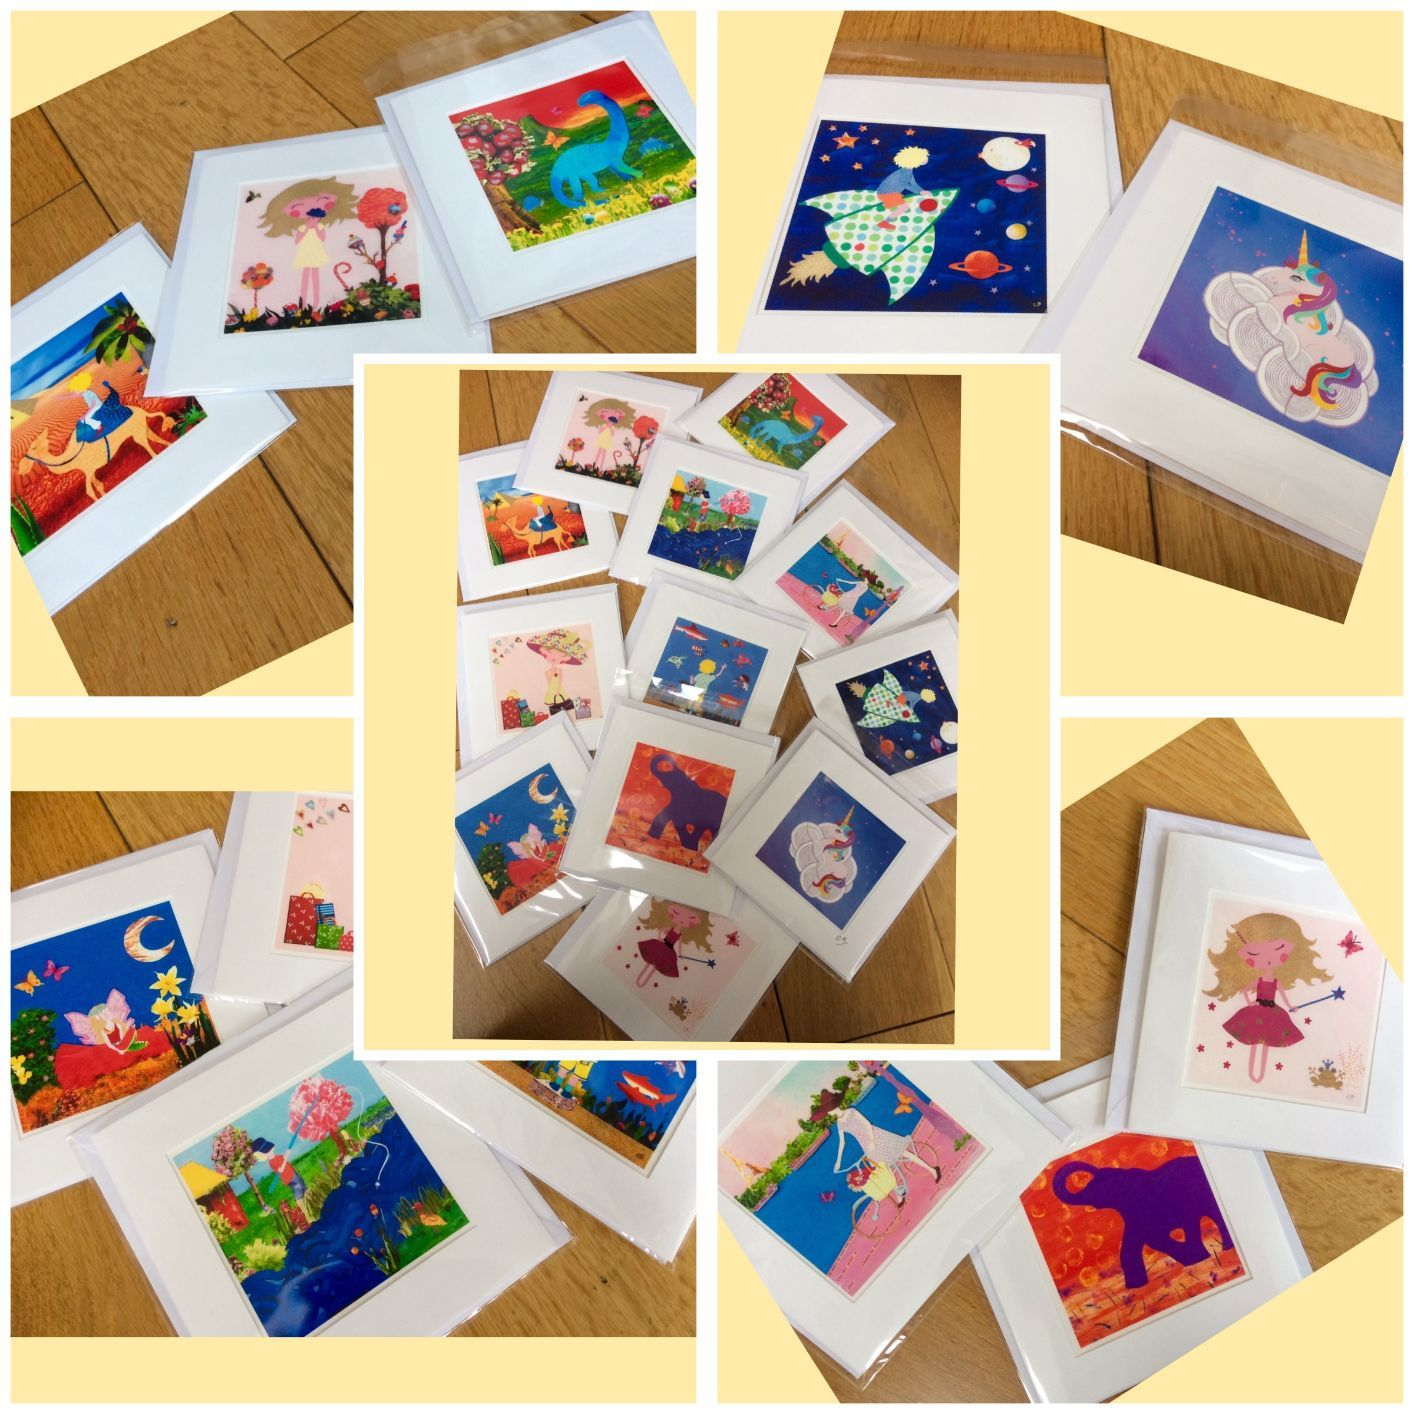 New: greeting cards for sale!